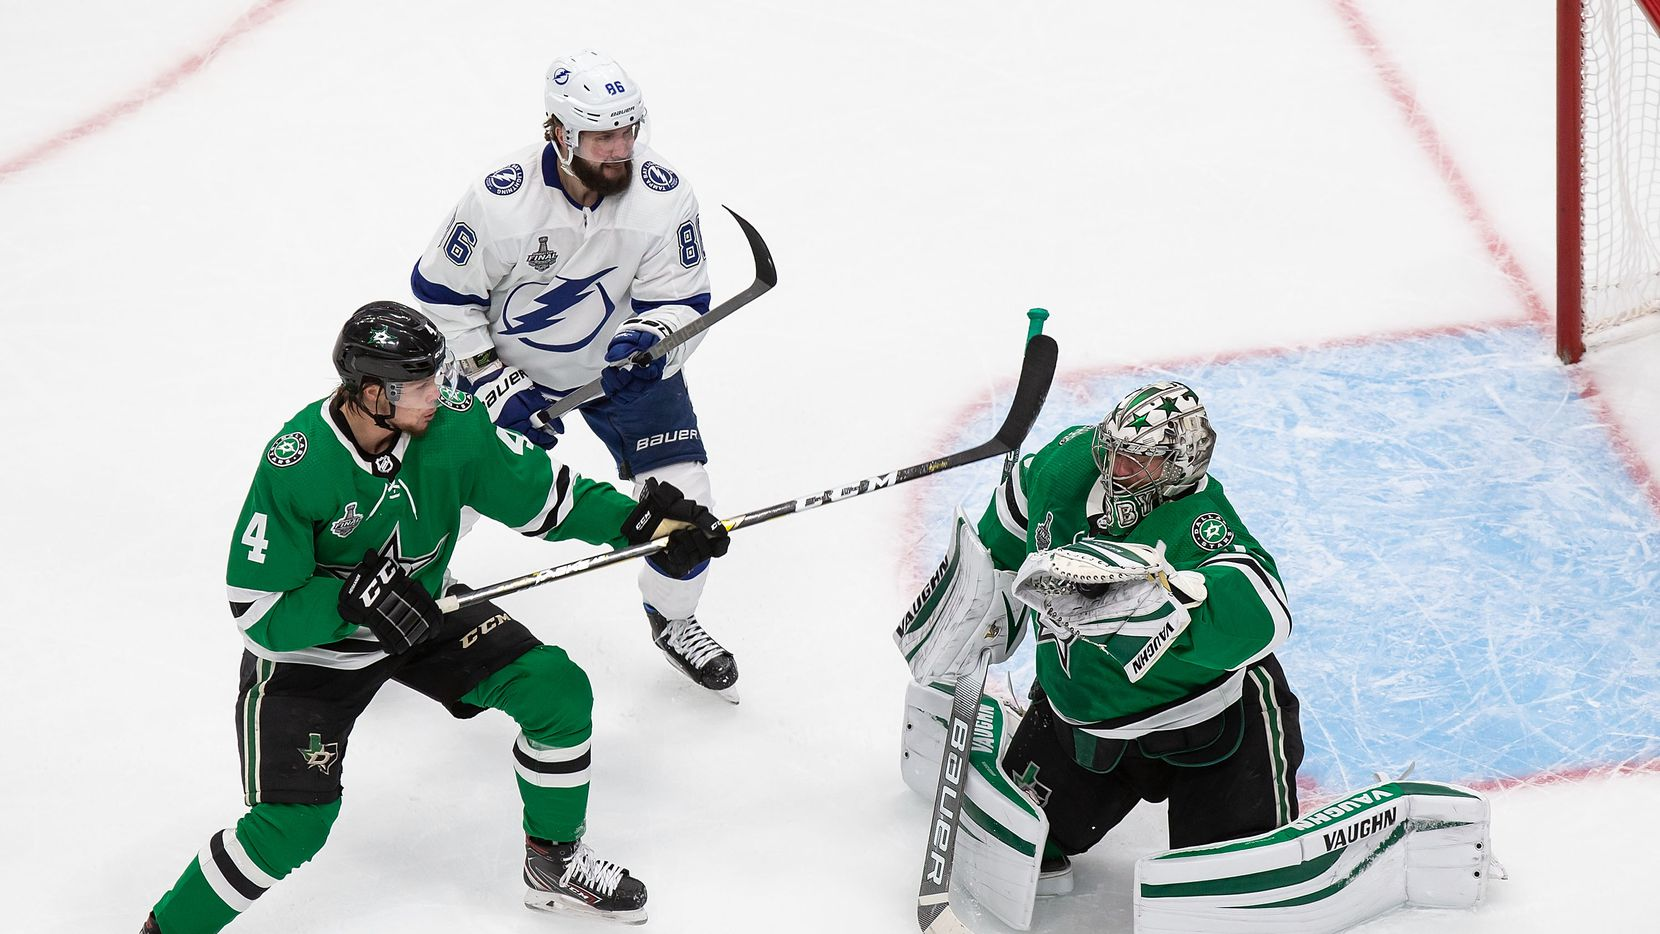 Miro Heiskanen (4) and goaltender Anton Khudobin (35) of the Dallas Stars defend against Nikita Kucherov (86) of the Tampa Bay Lightning during Game Three of the Stanley Cup Final at Rogers Place in Edmonton, Alberta, Canada on Wednesday, September 23, 2020.